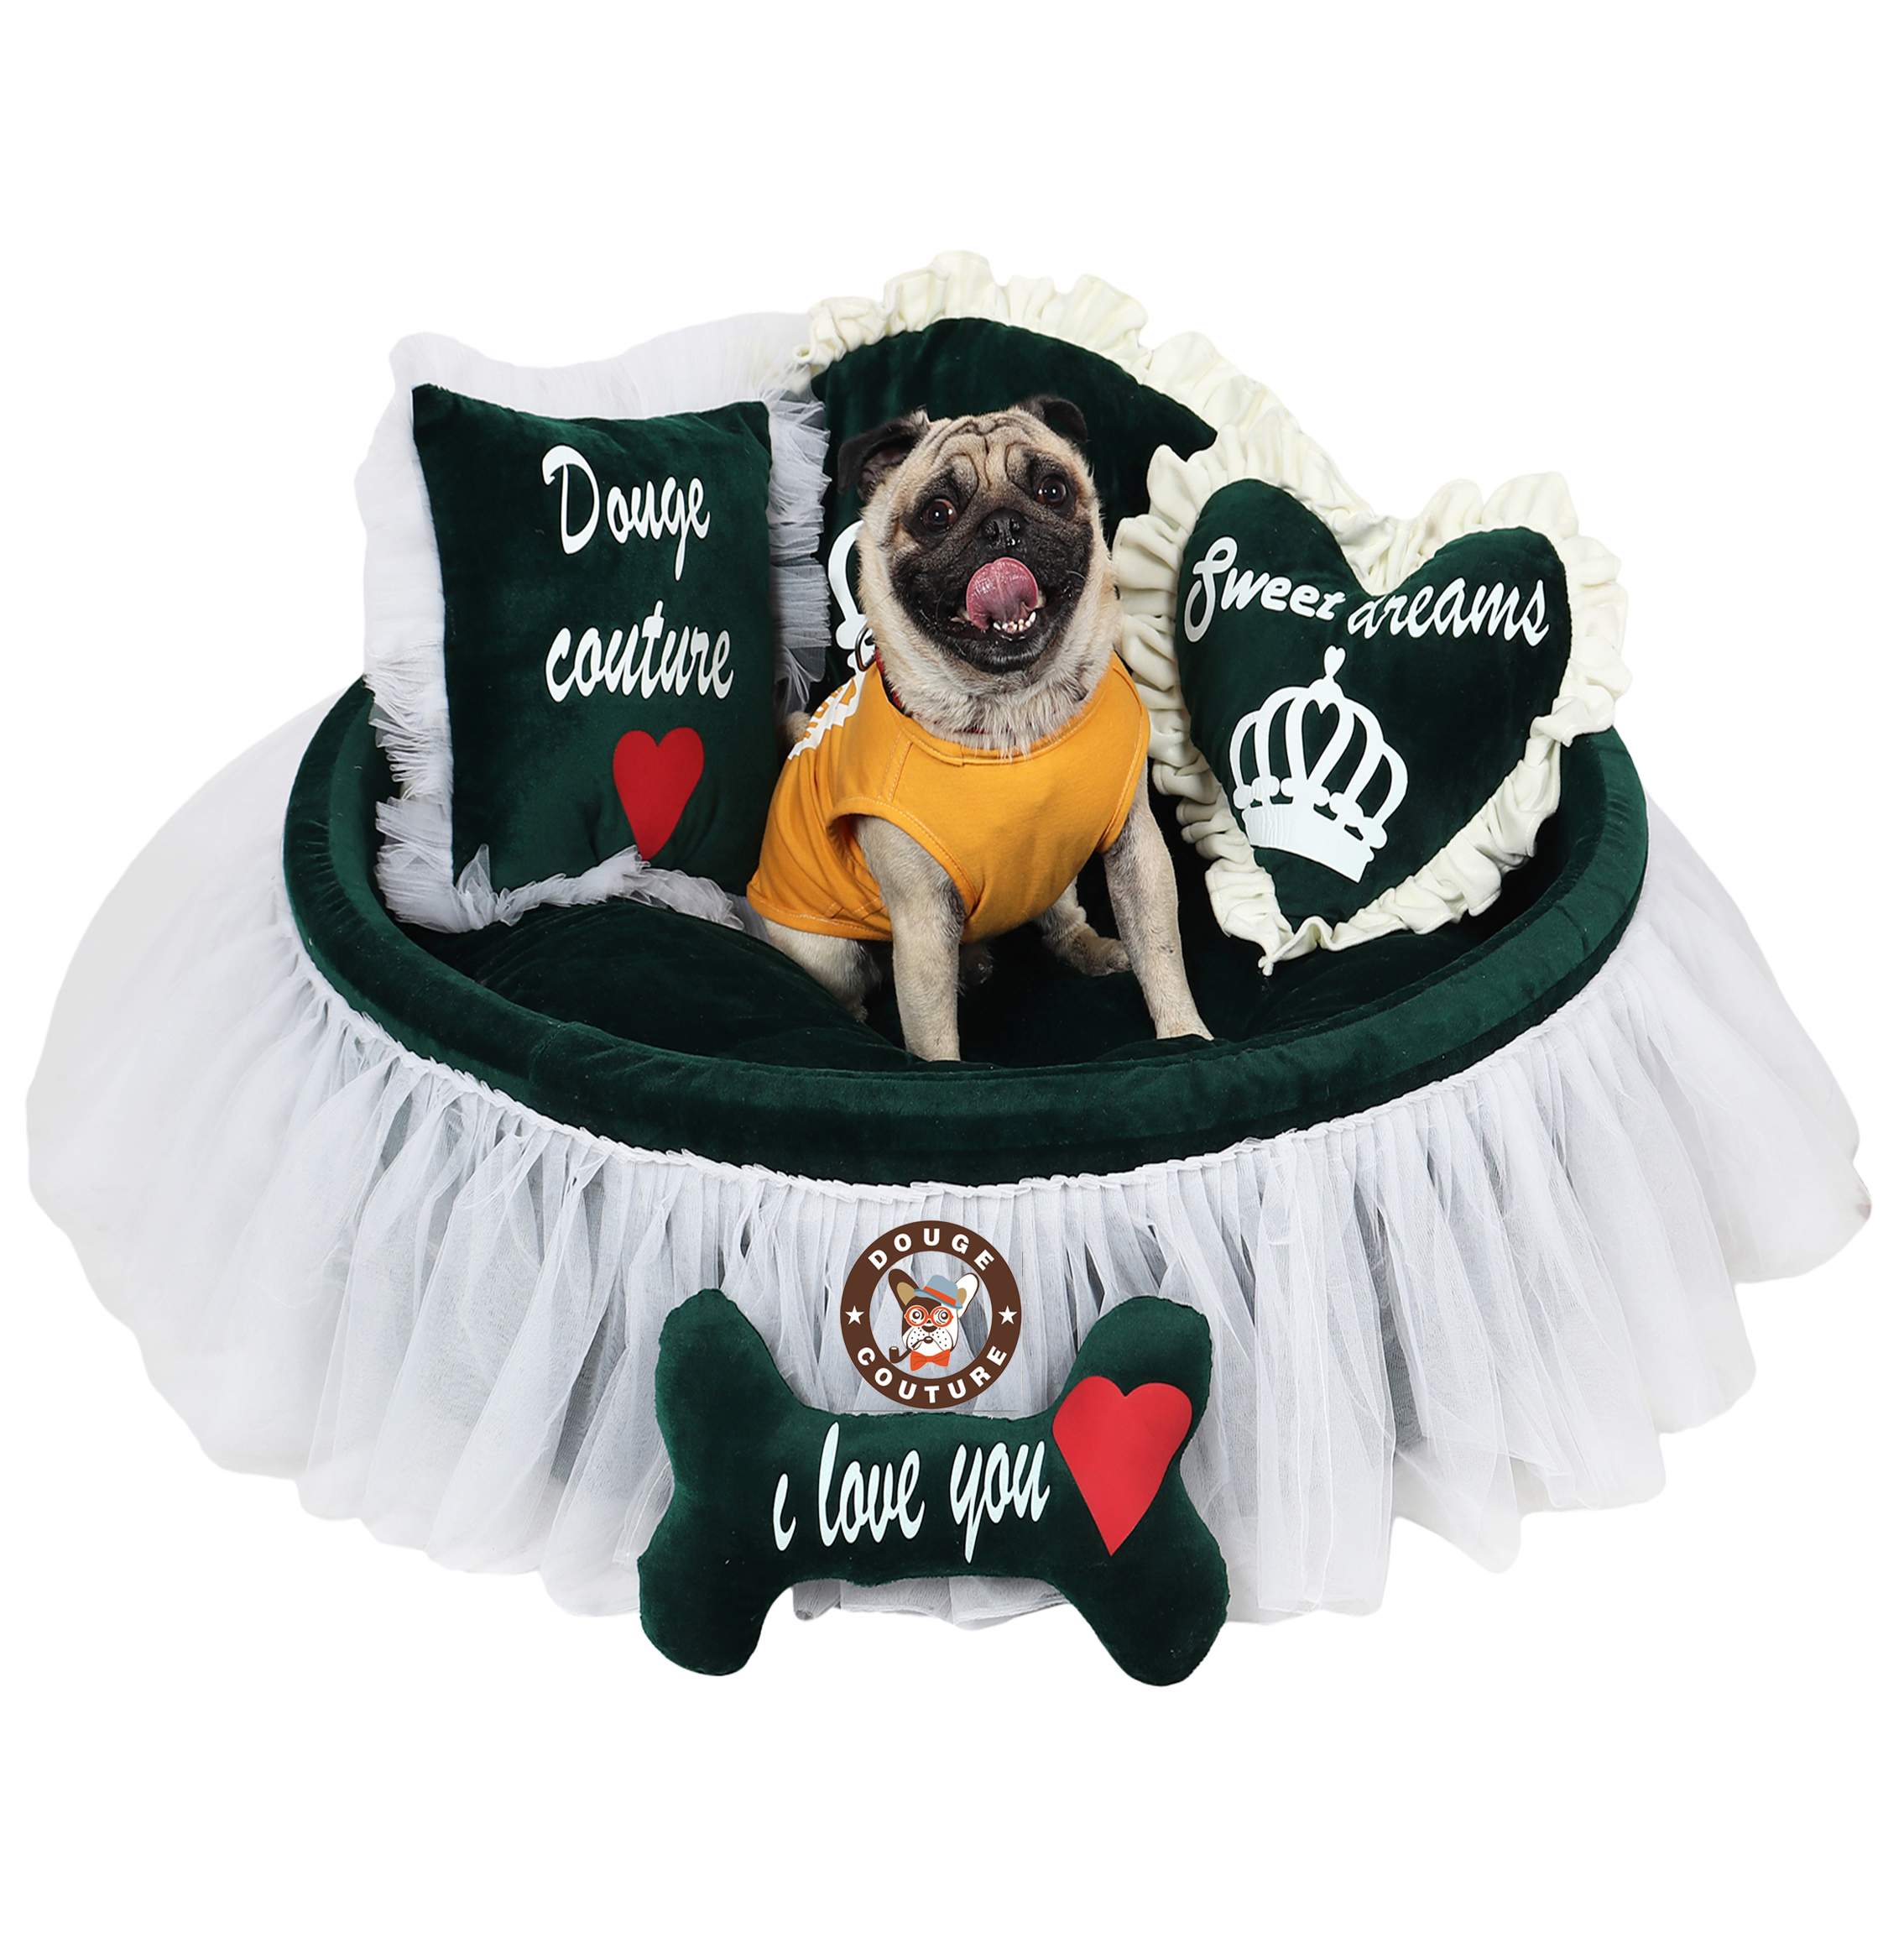 Douge Couture dog bed Luxury dog bed in dark turquoish green Personalized dog bed Large dog bed Custom made dog bed Personalized dog bed Toy for dog